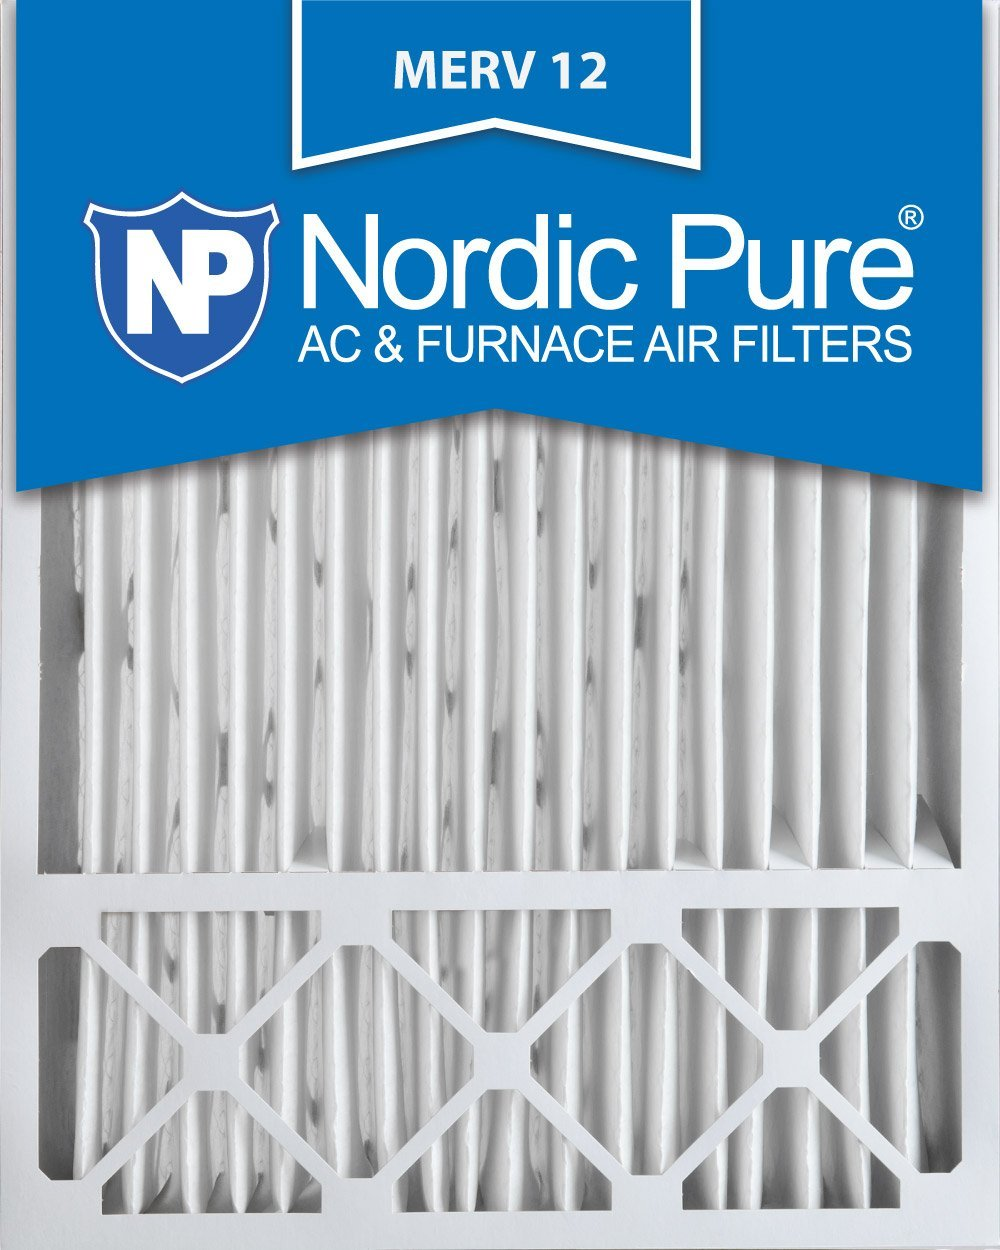 Nordic Pure 20x25x5 (4-3/8 Actual Depth) Lennox X6673 Replacement MERV 12 Pleated AC Furnace Air Filter, Box of 2